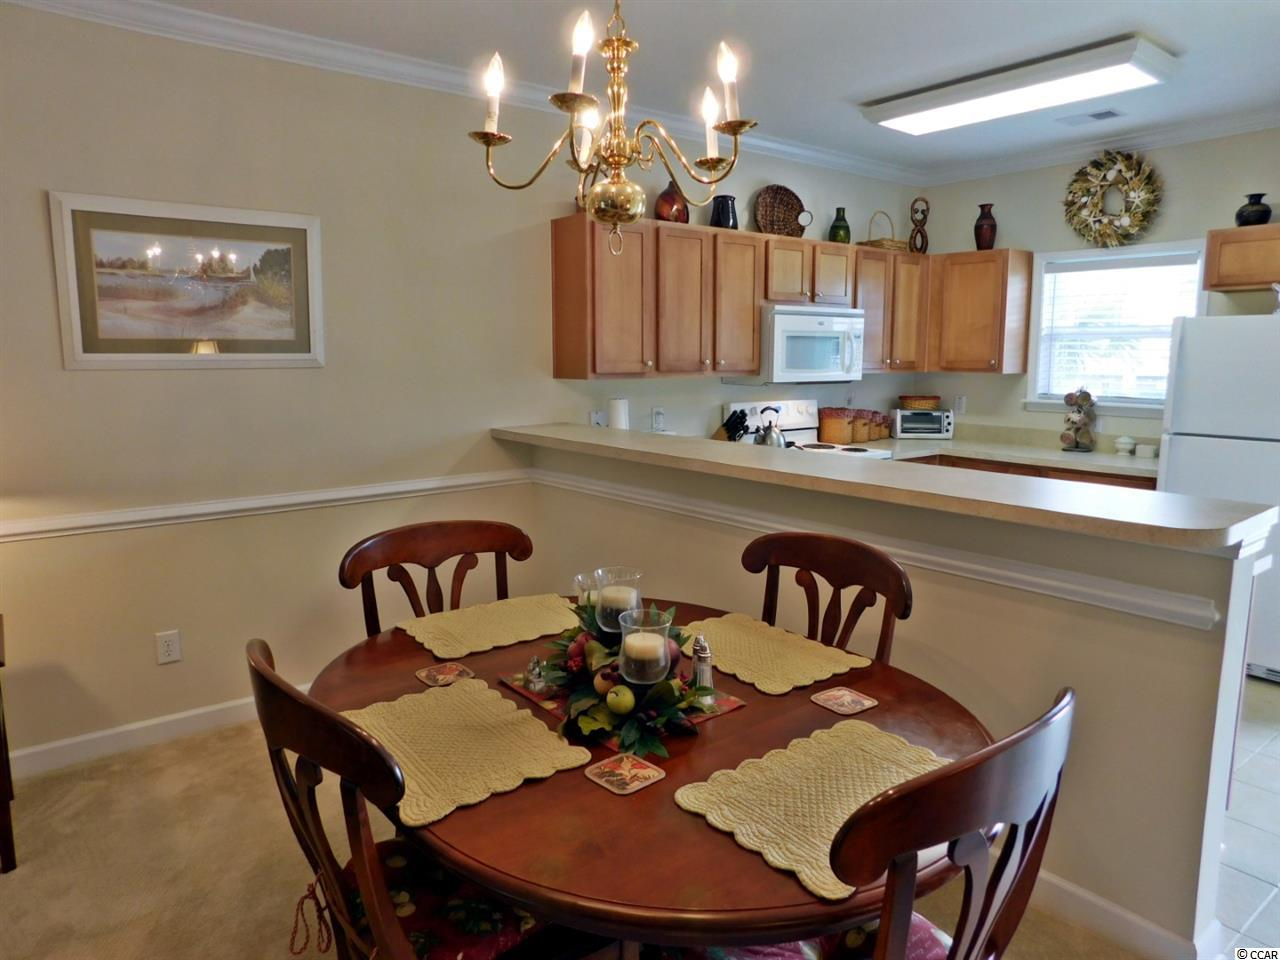 2 bedroom  Willow Bend condo for sale